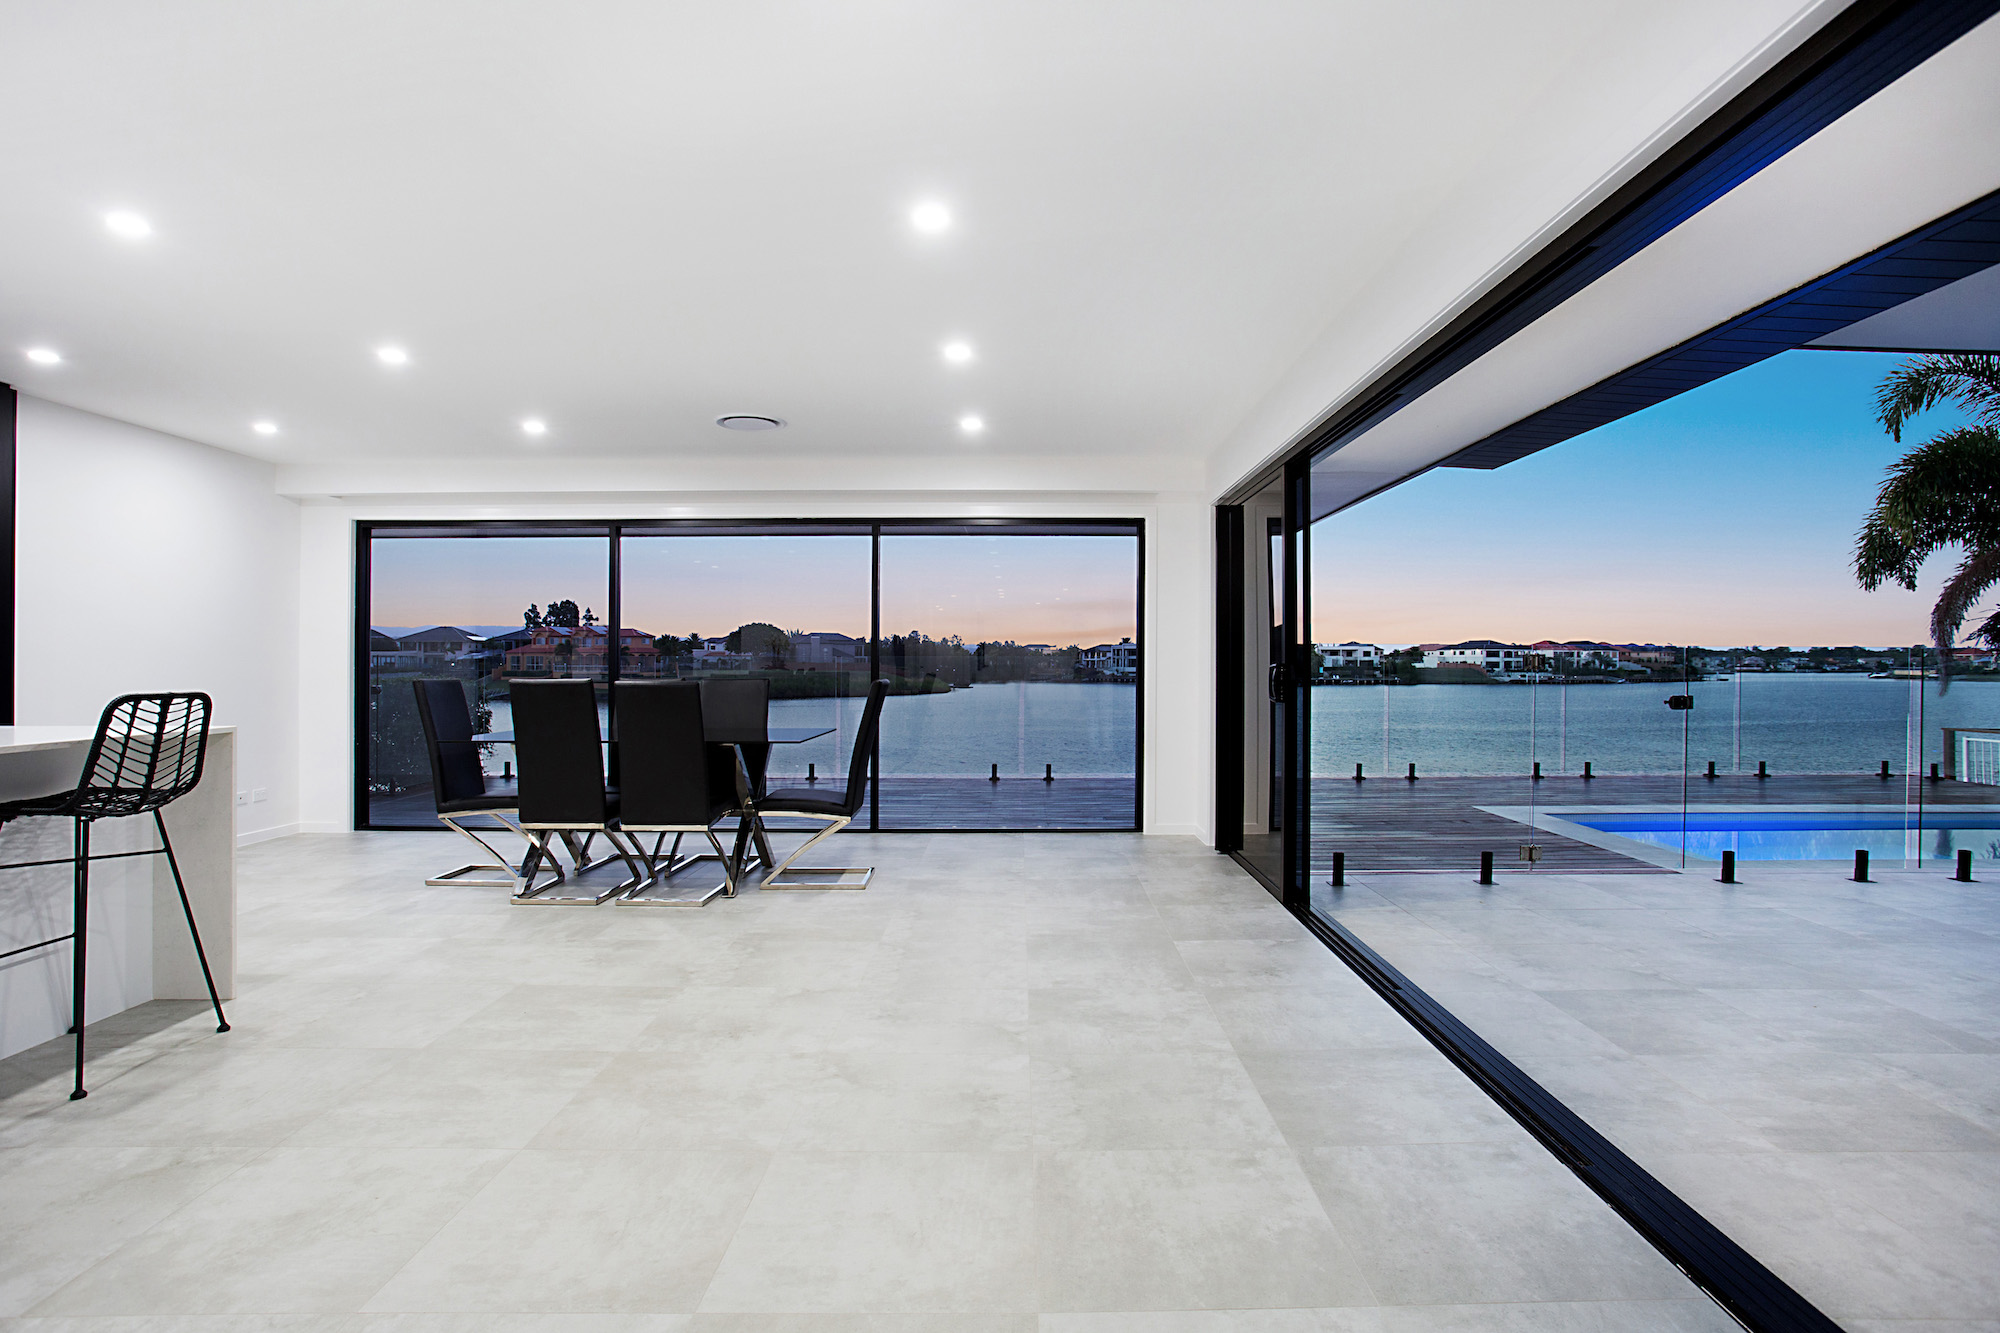 Black stacker doors blend the spaces to create indoor outdoor living with the flowing concrete tiles